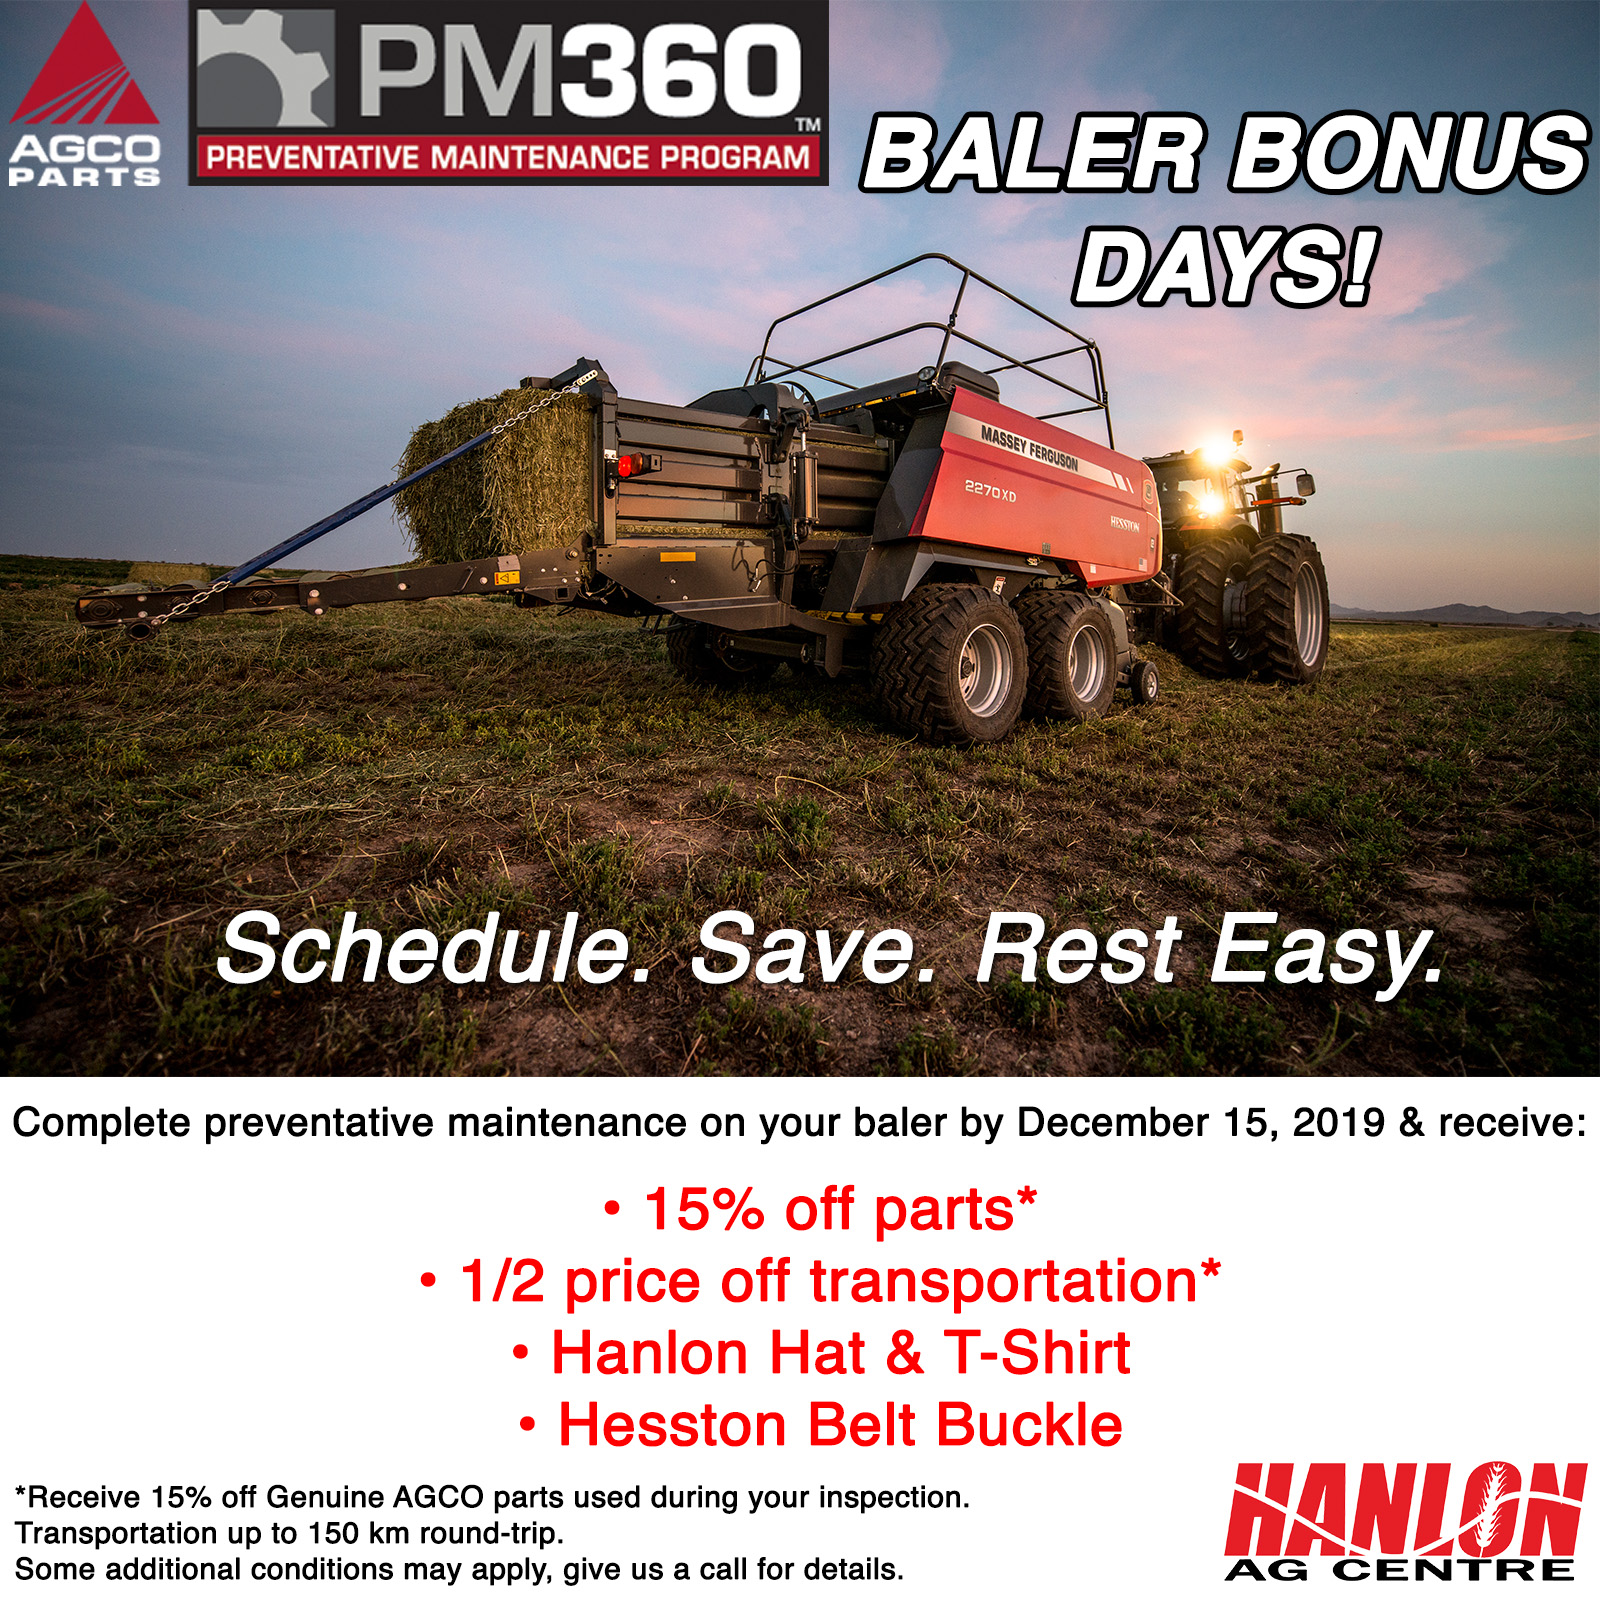 Schedule your preventative maintenance at Hanlon Ag Centre and receive 15% off parts used during your maintenance inspection. Receive half-price transportation, a Hesston belt buckle and a Hanlon Hat and T-shirt. Maintenance must be scheduled before December 15, 2019